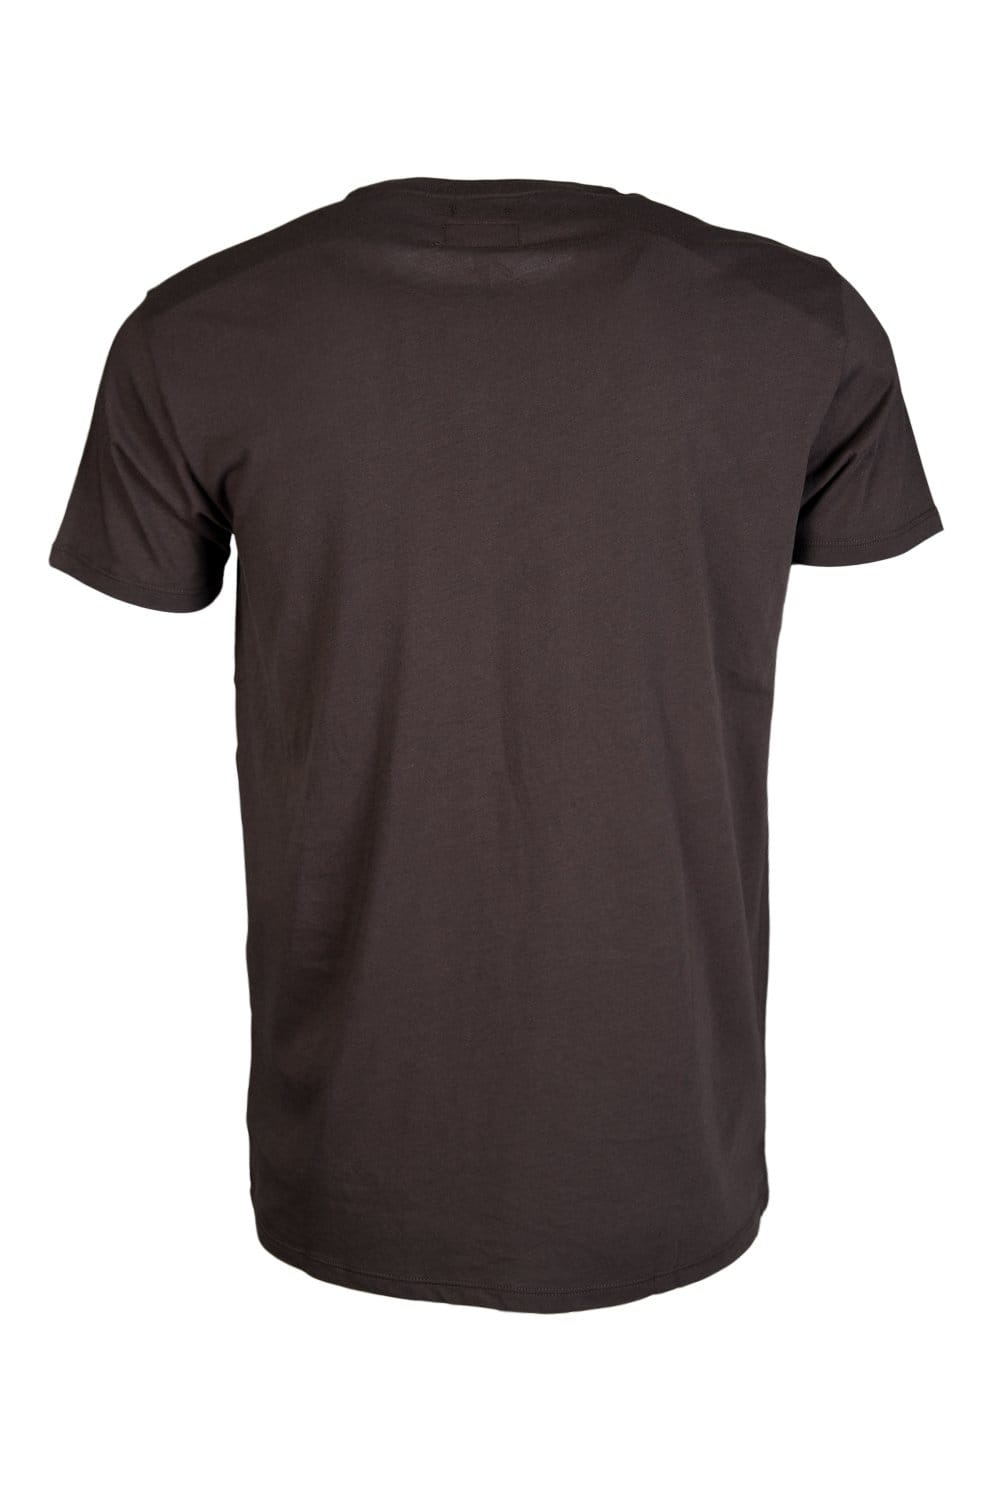 armani jeans casual round neck t shirt b6h77ul armani. Black Bedroom Furniture Sets. Home Design Ideas